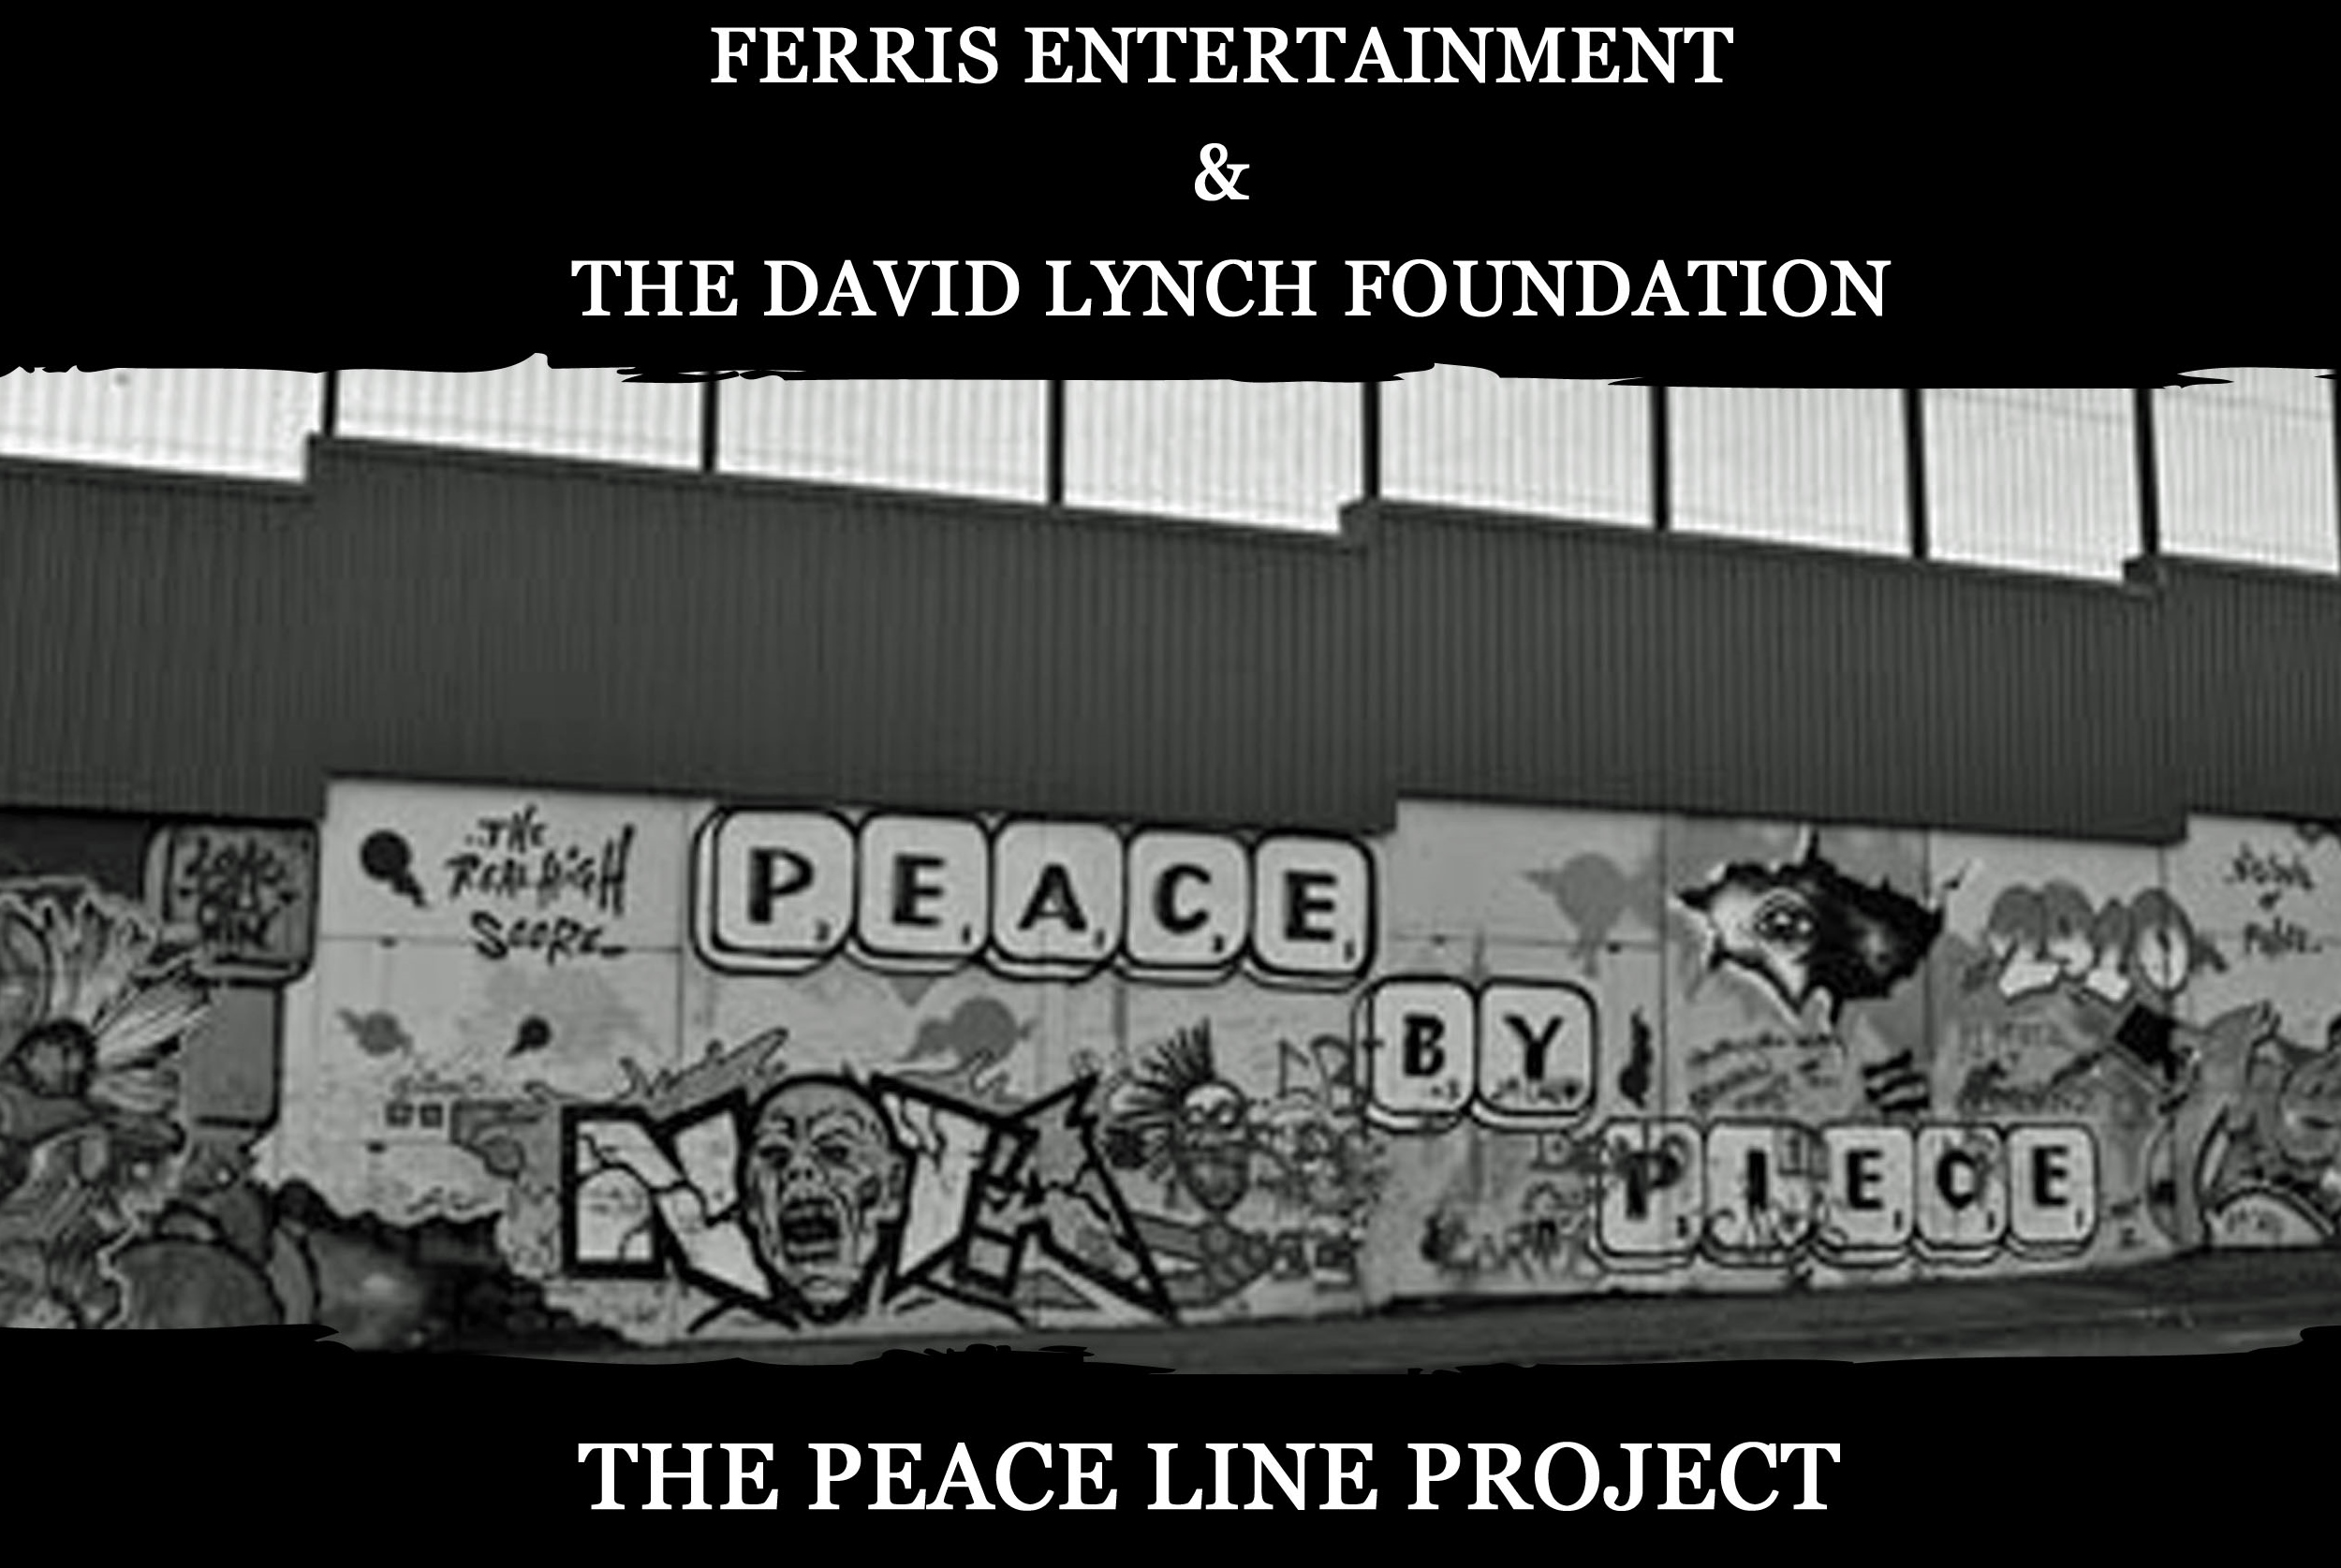 The Peaceline Project (2009)